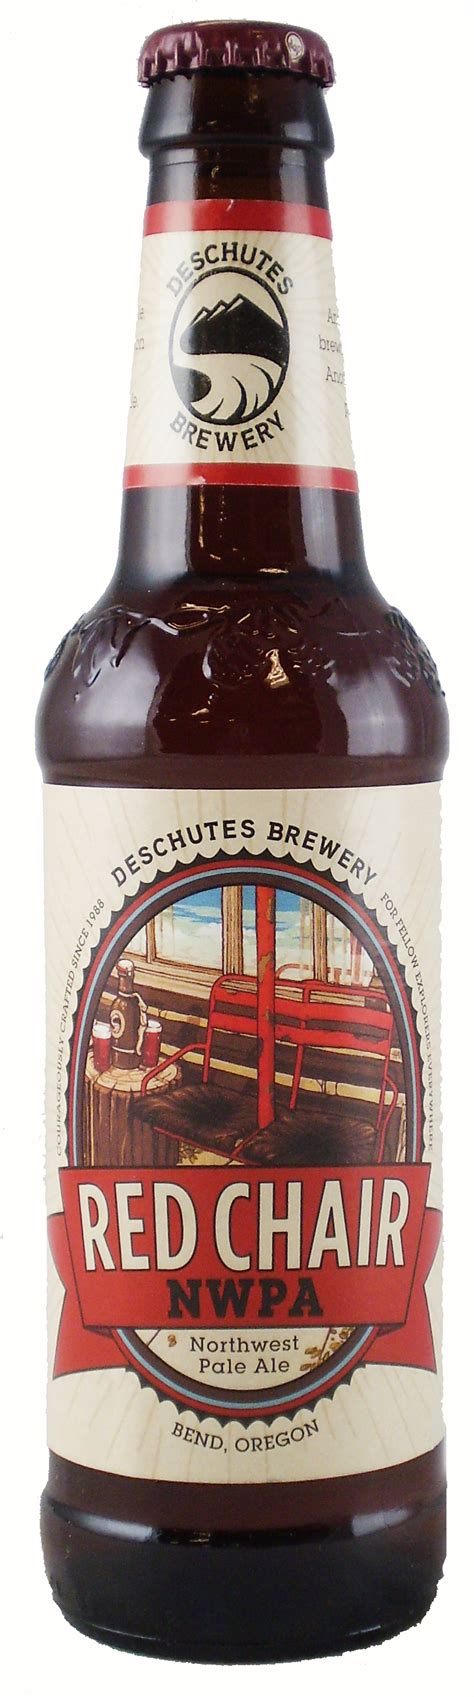 review deschutes brewery cinder cone and chair nwpa 2010 drinkhacker